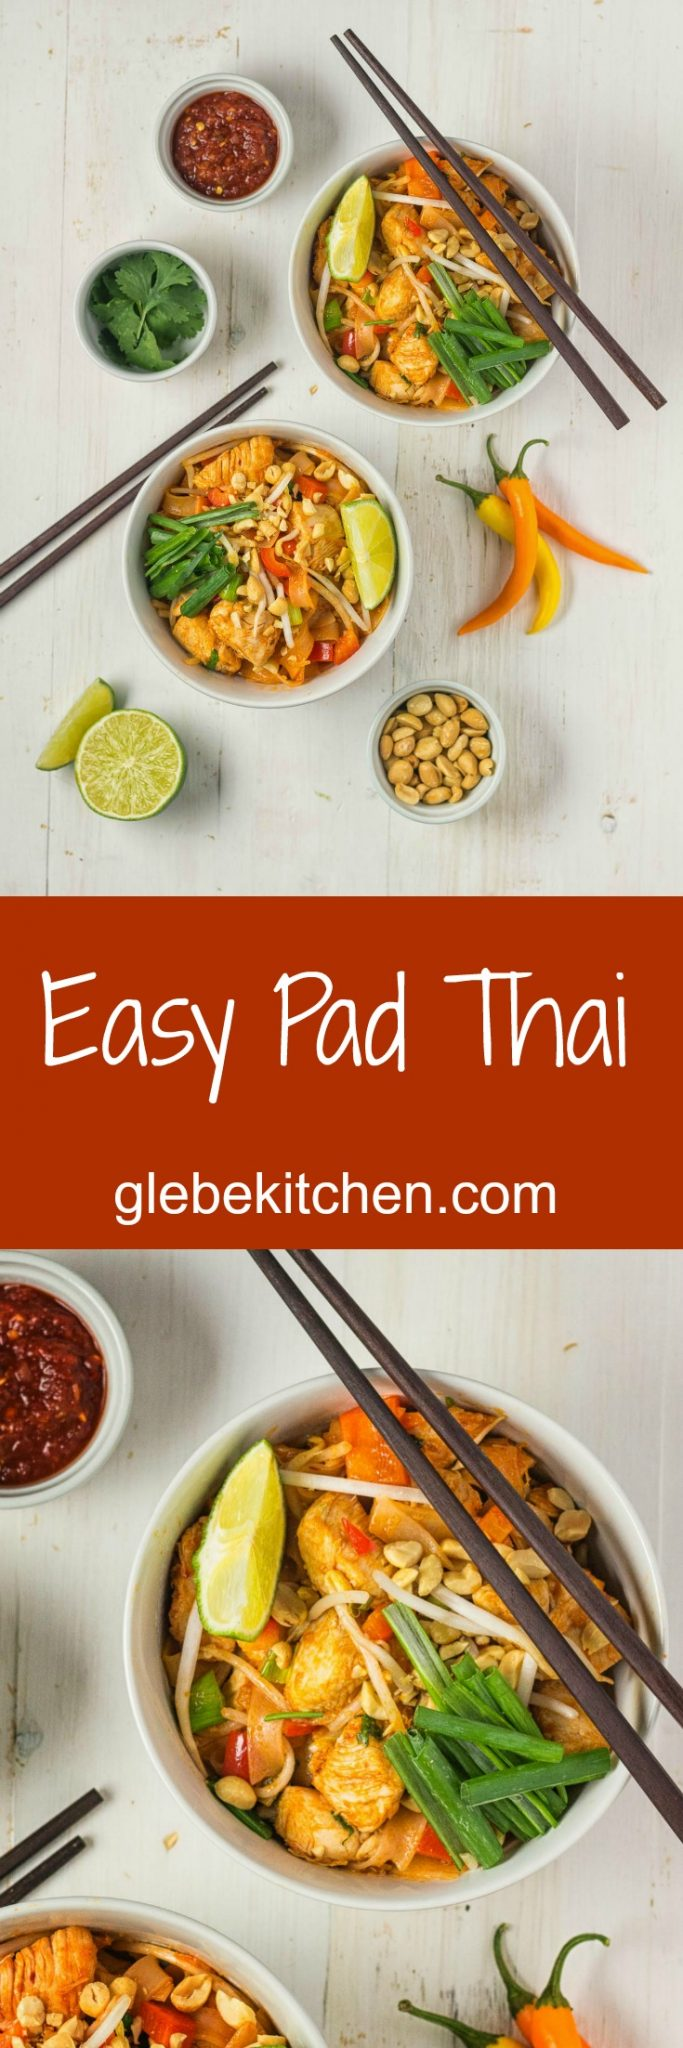 A simpler pad thai recipe great for weeknight dinners.